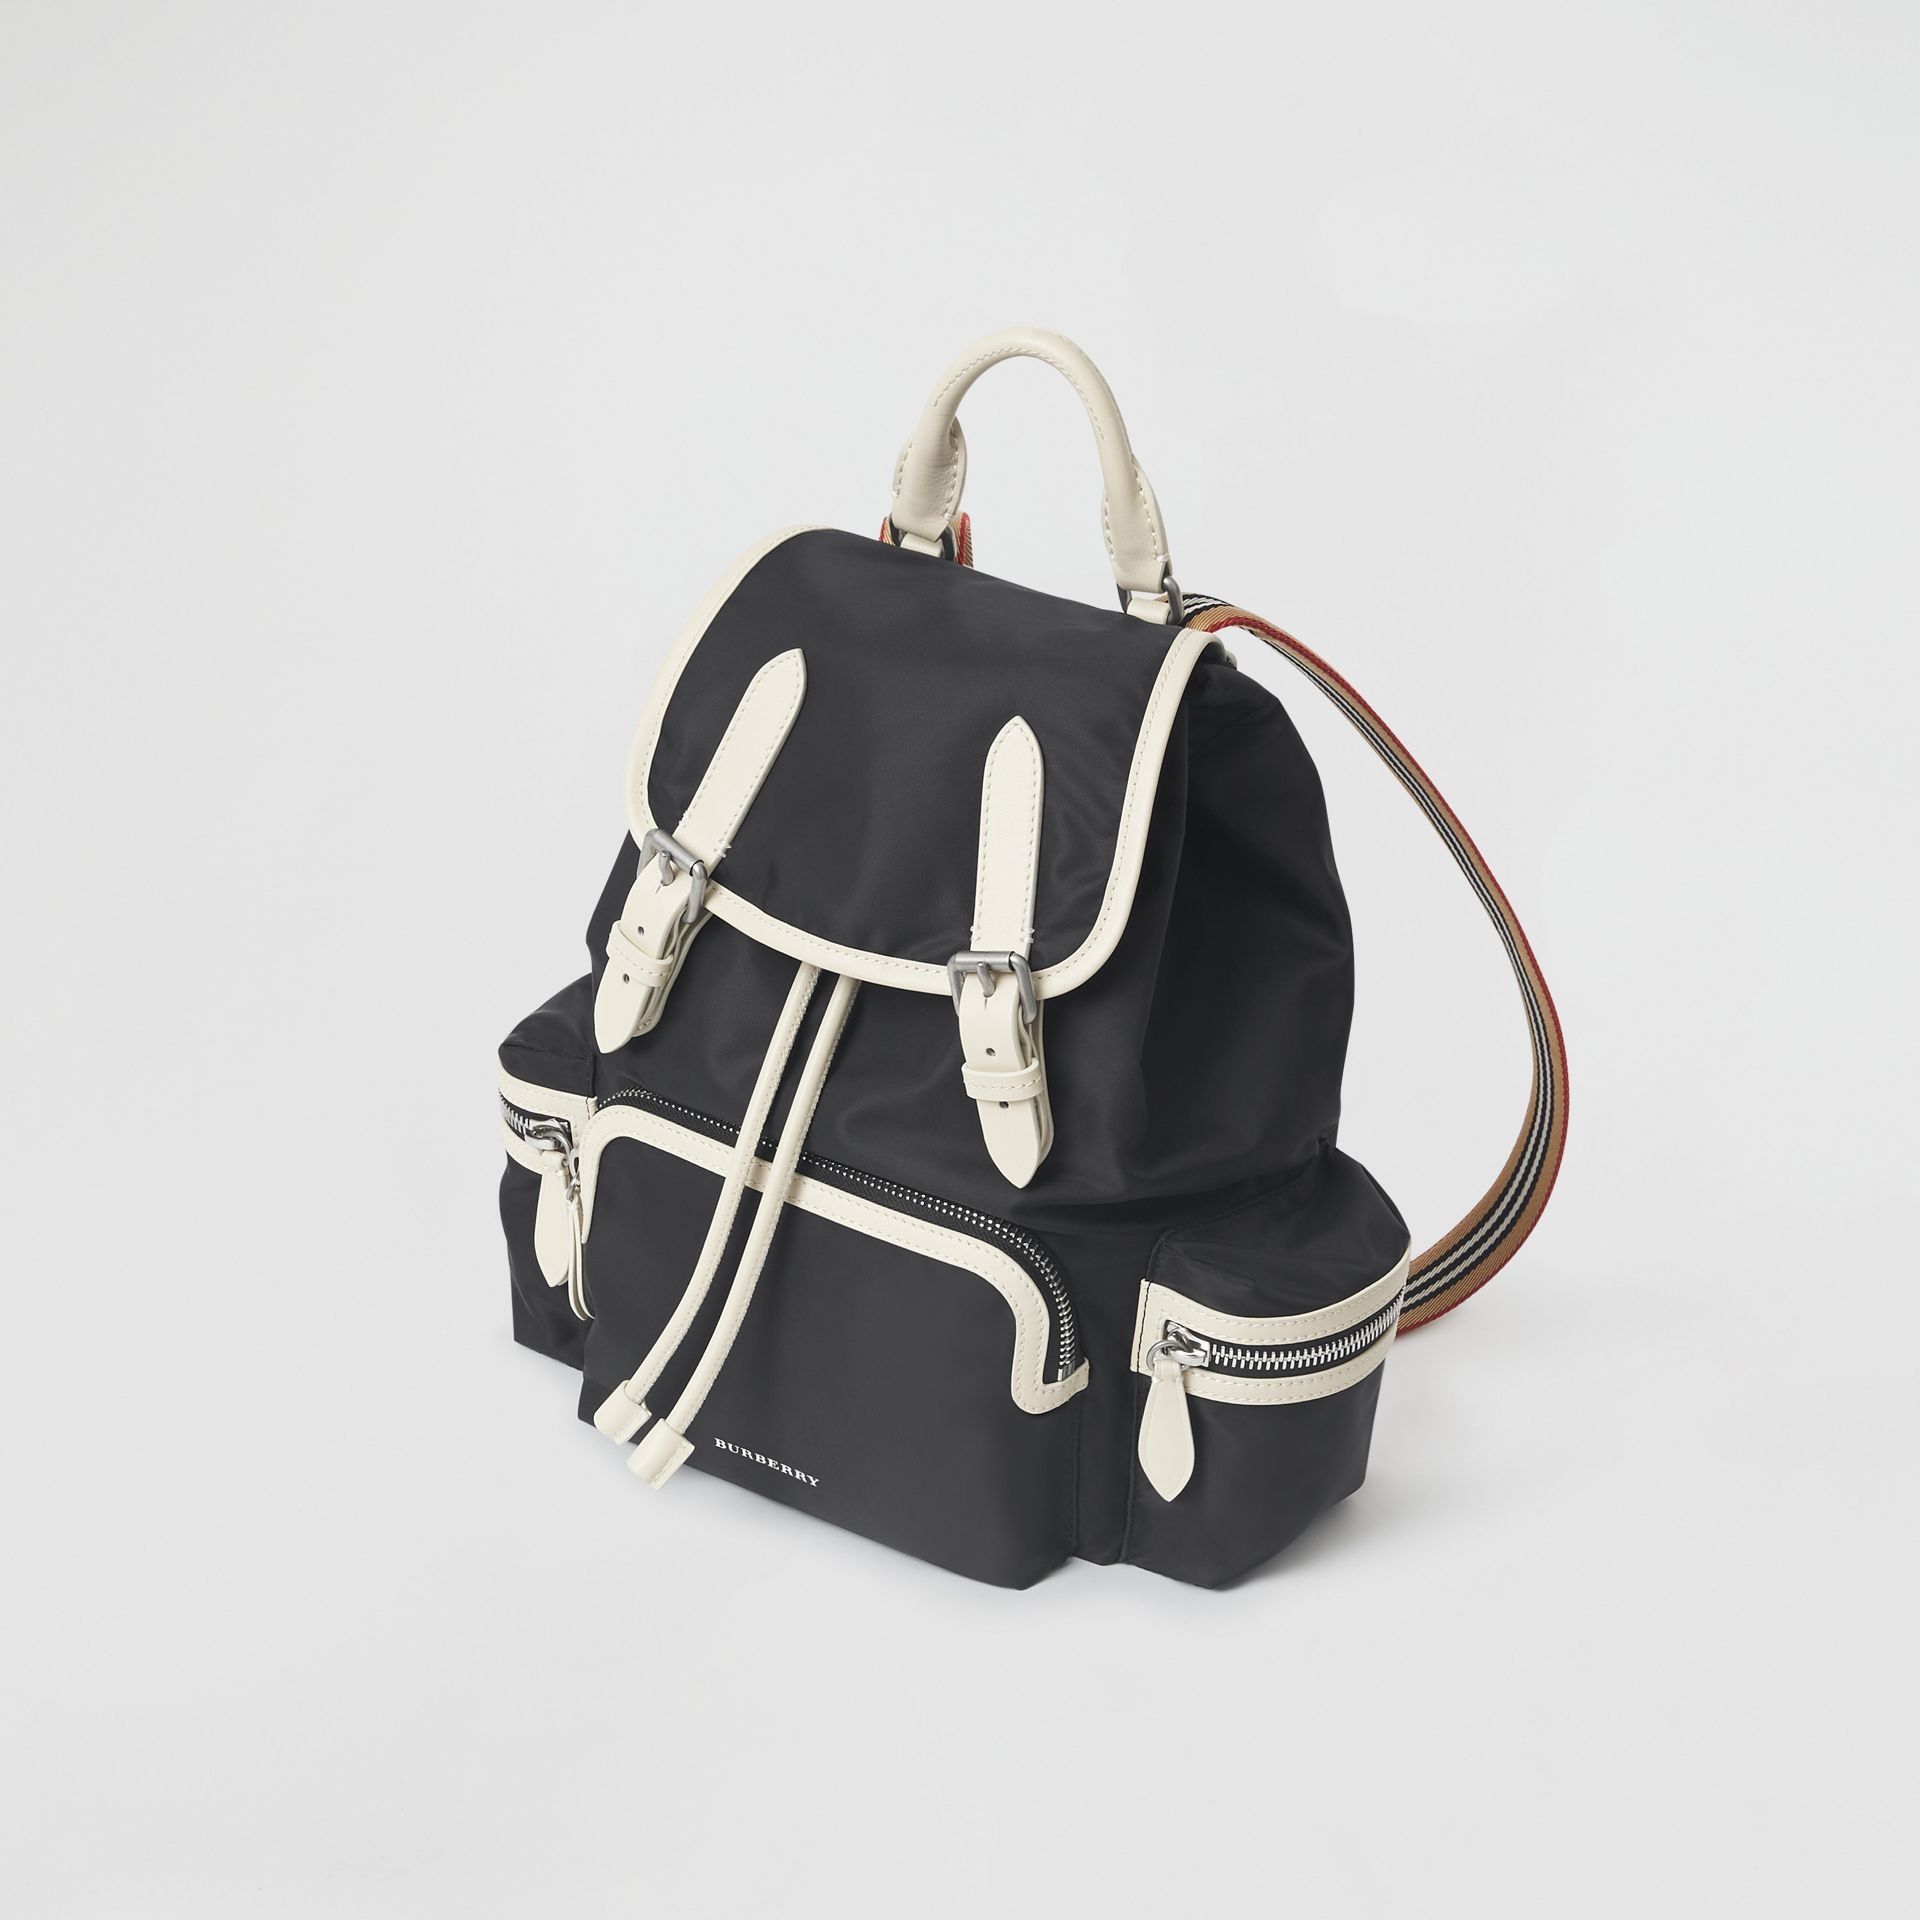 Sac The Rucksack moyen en nylon technique et cuir (Noir) - Femme | Burberry - photo de la galerie 6